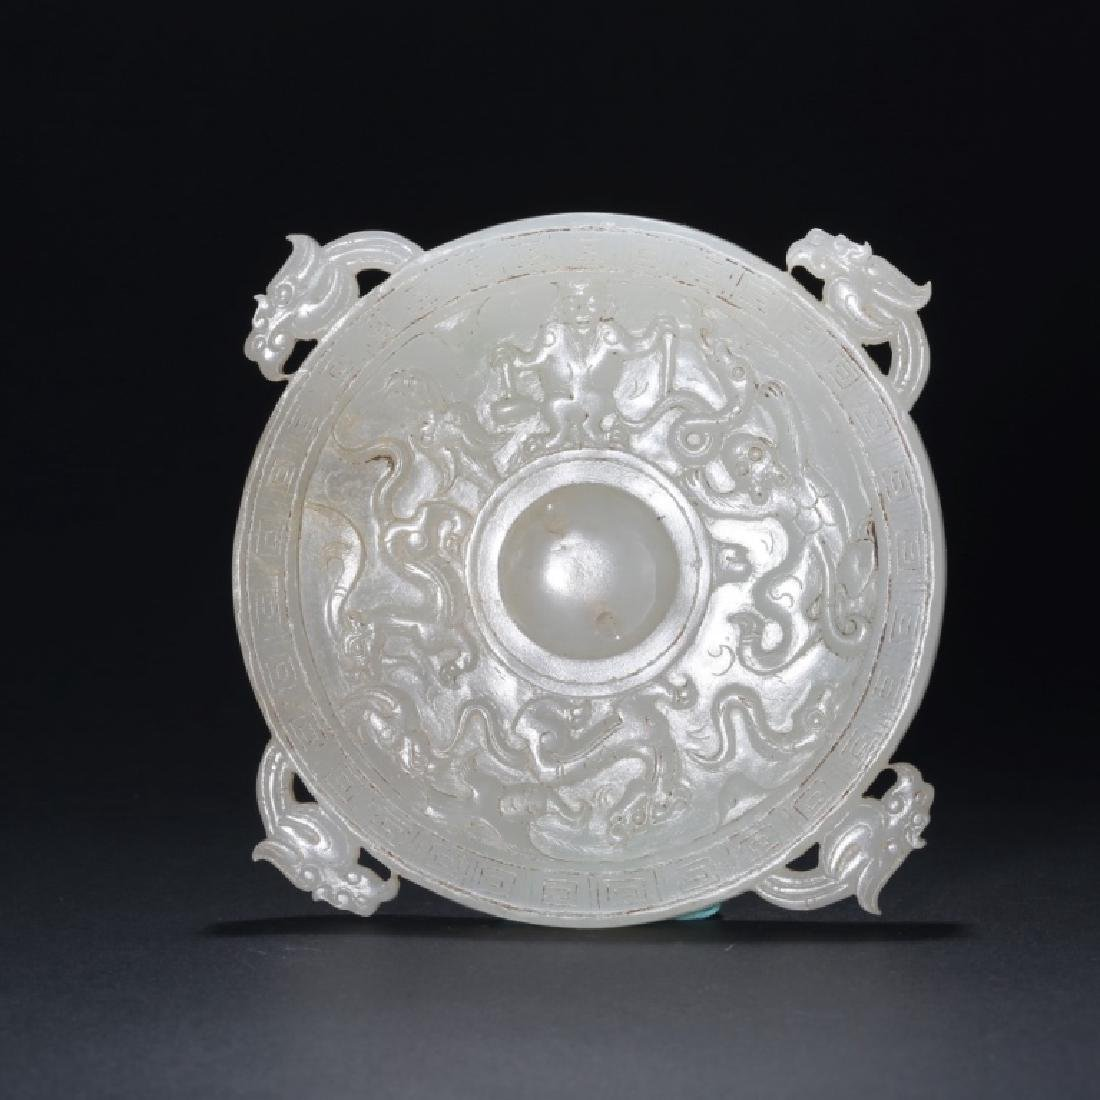 Chinese White Jade Carved Like a Round Mirror